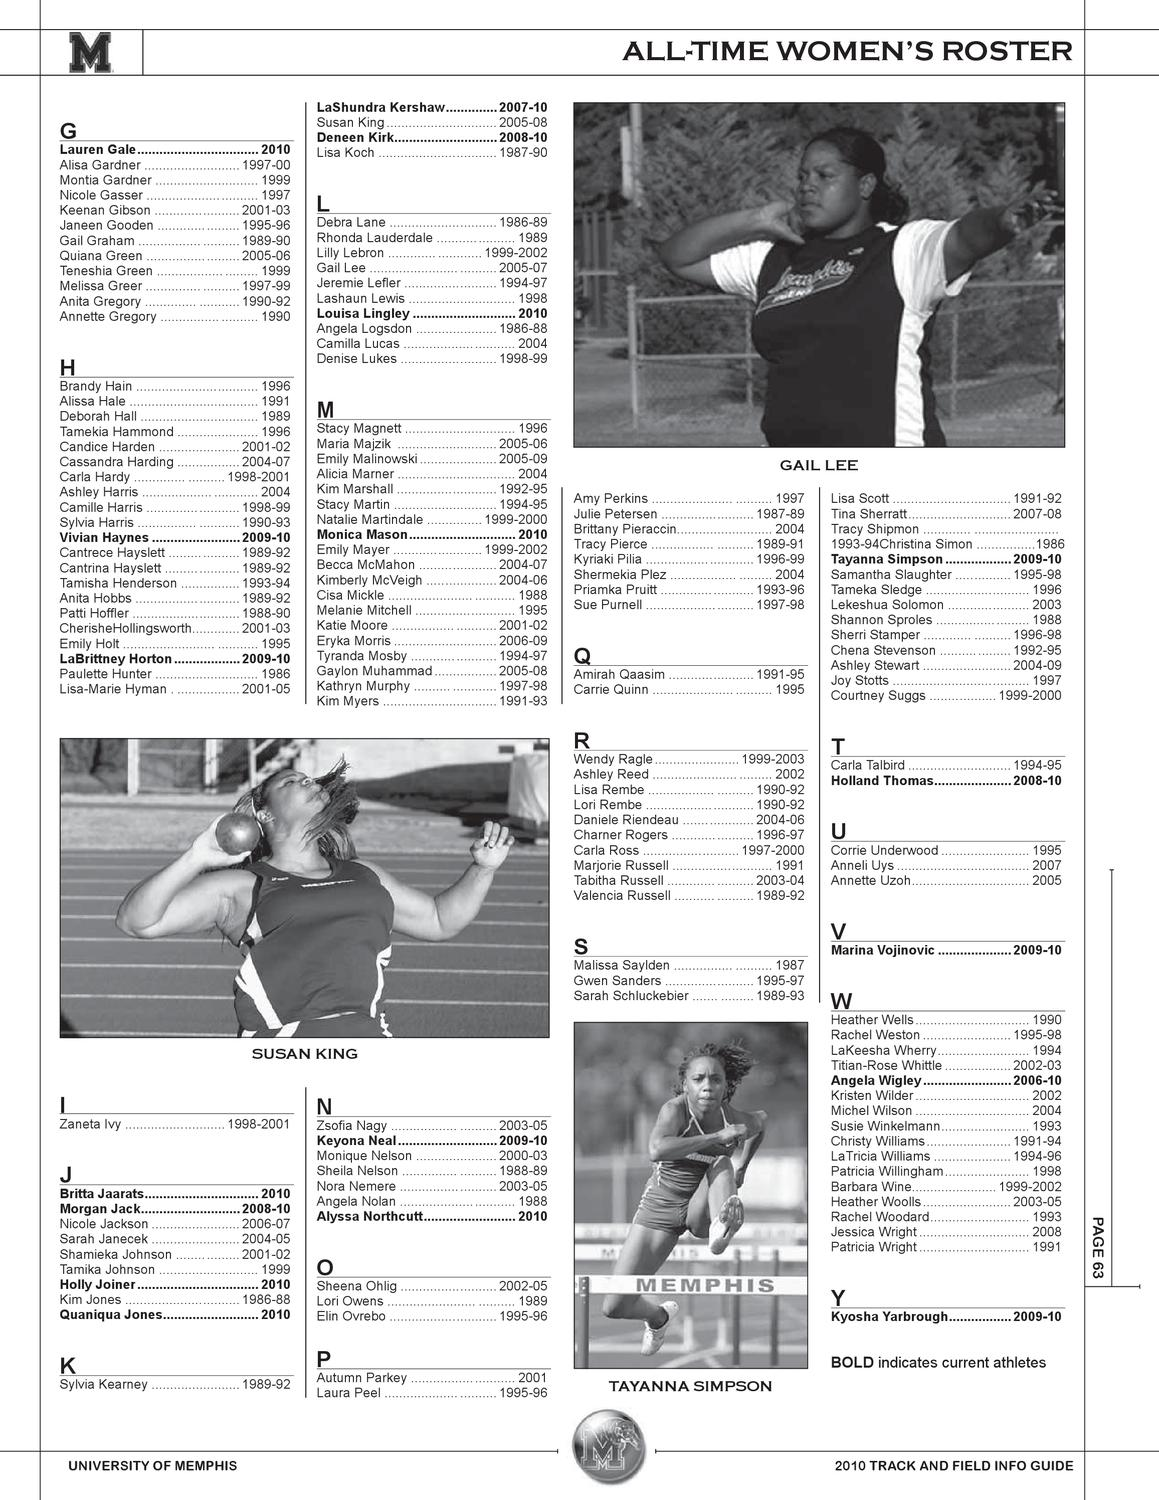 2010 Memphis Track and Field Information Guide by